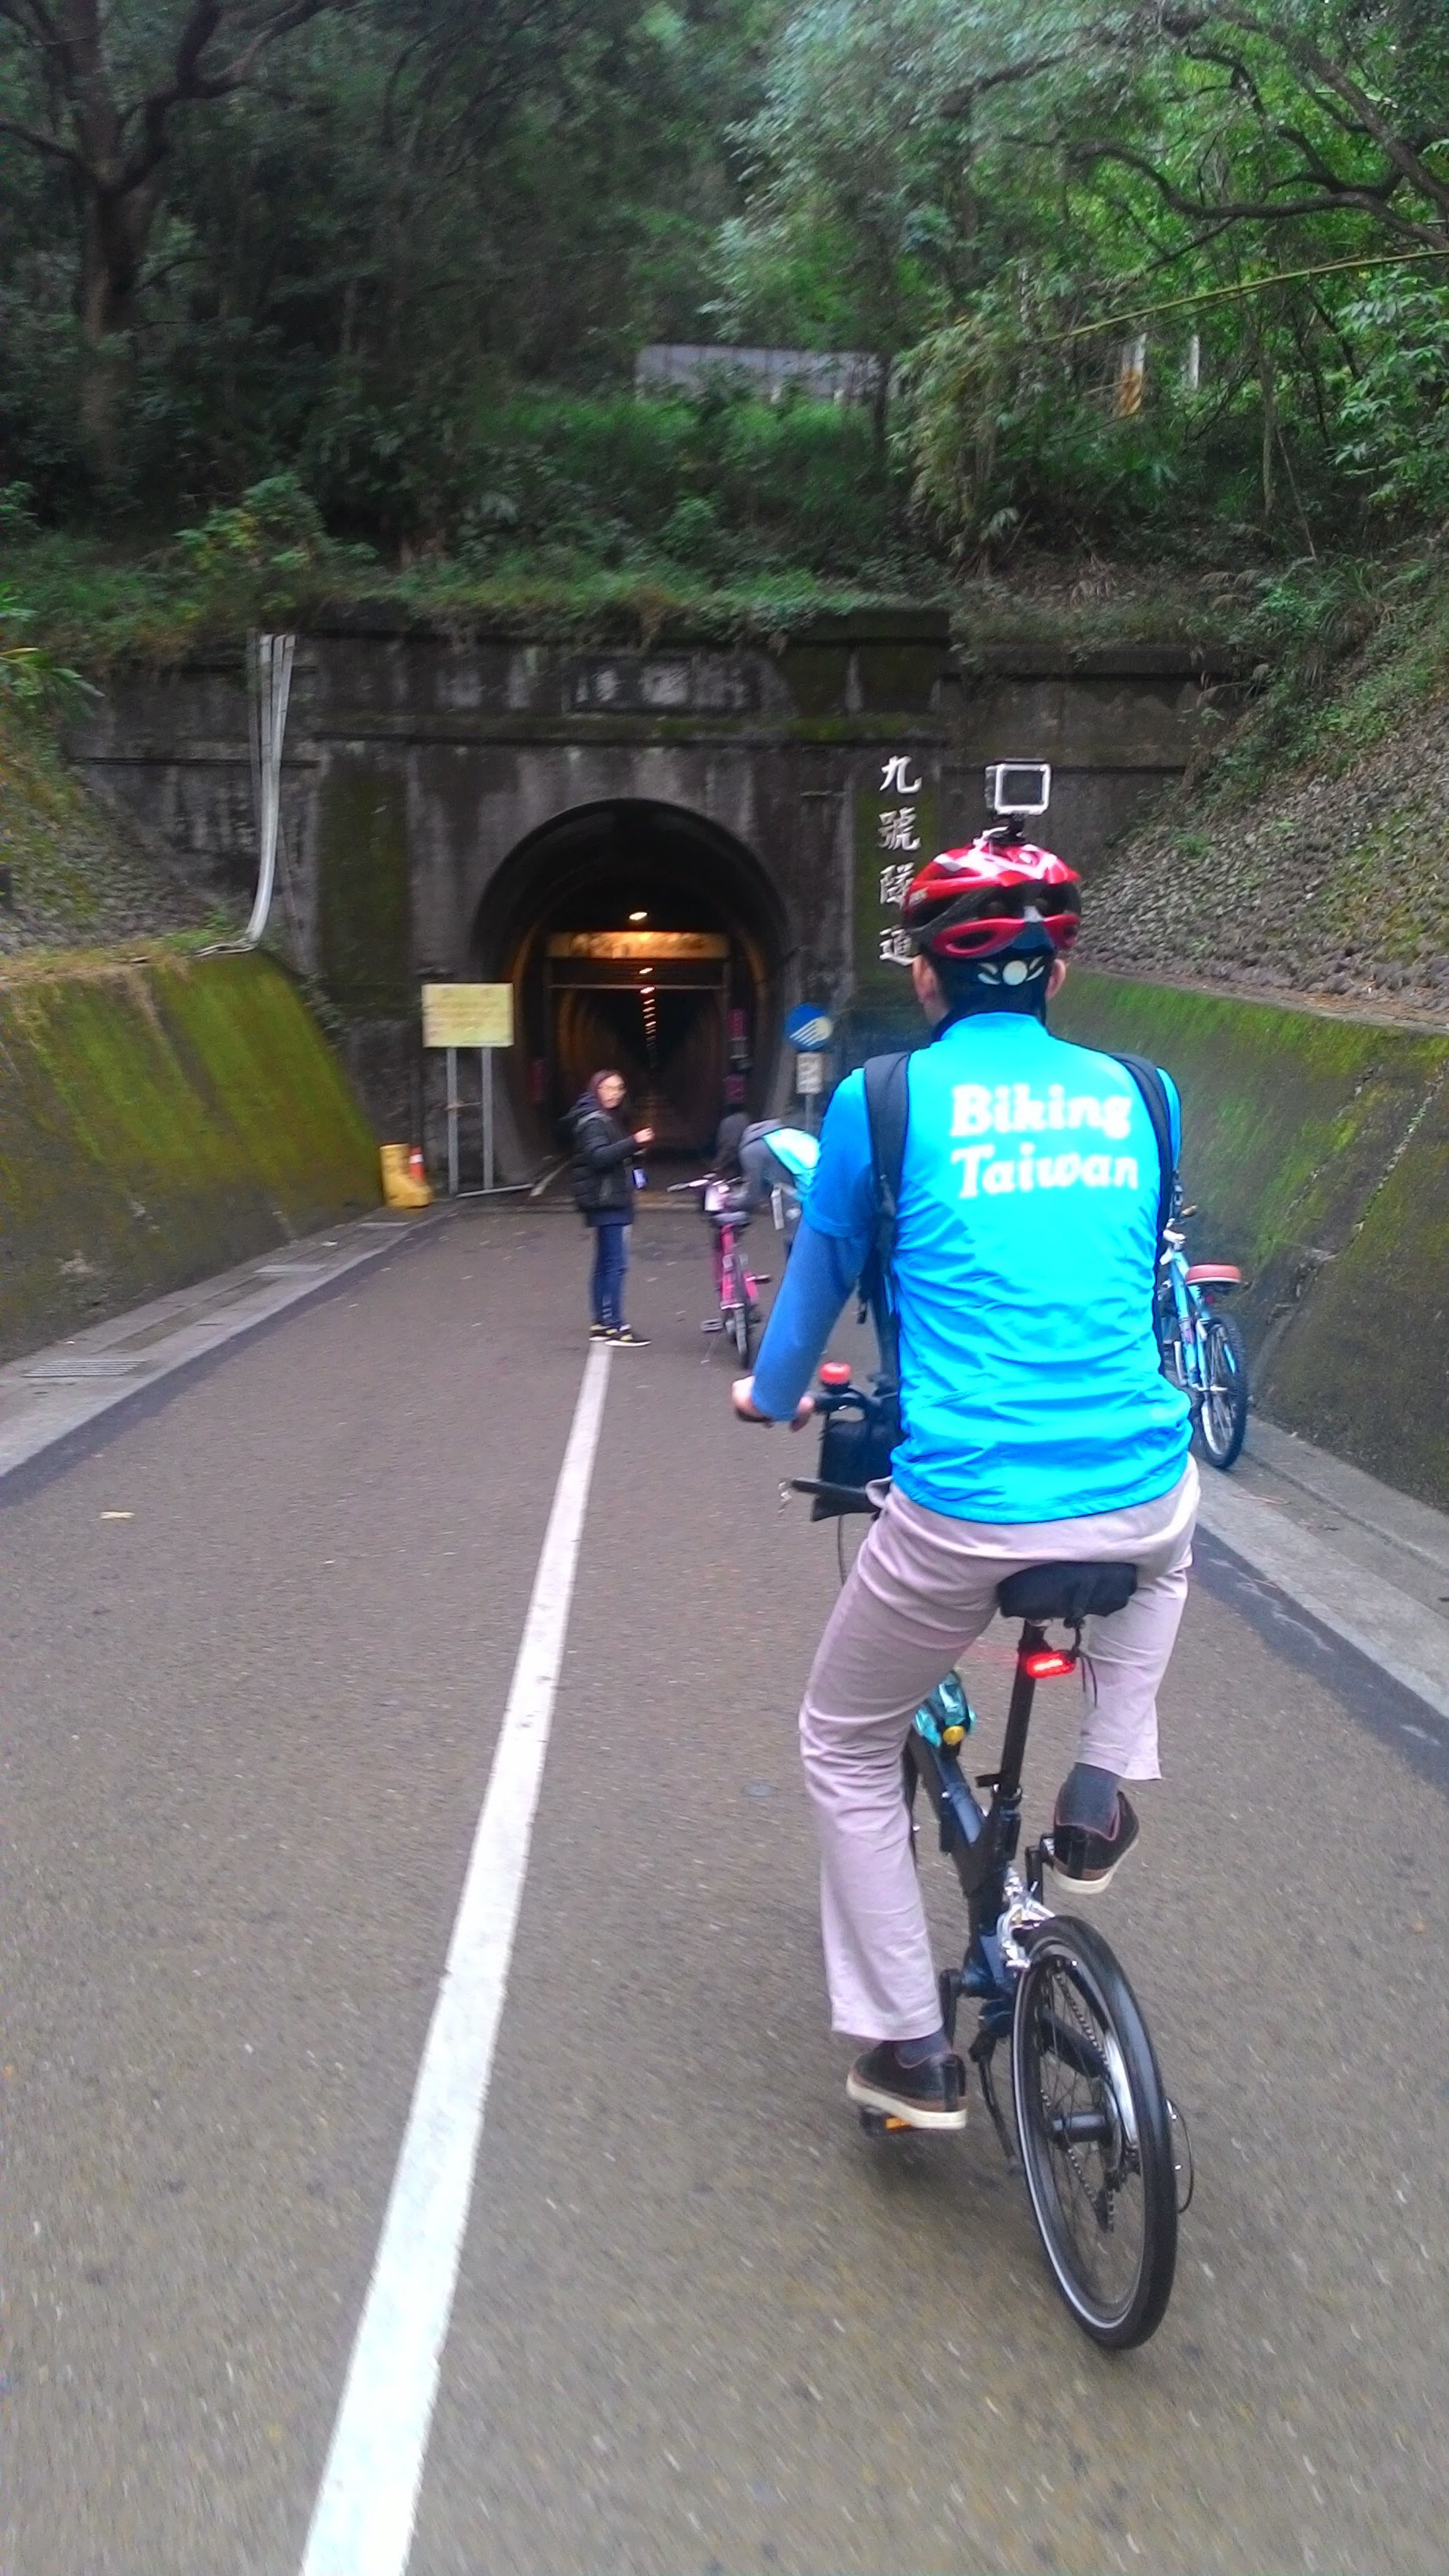 Entering the old tunnel with histories!